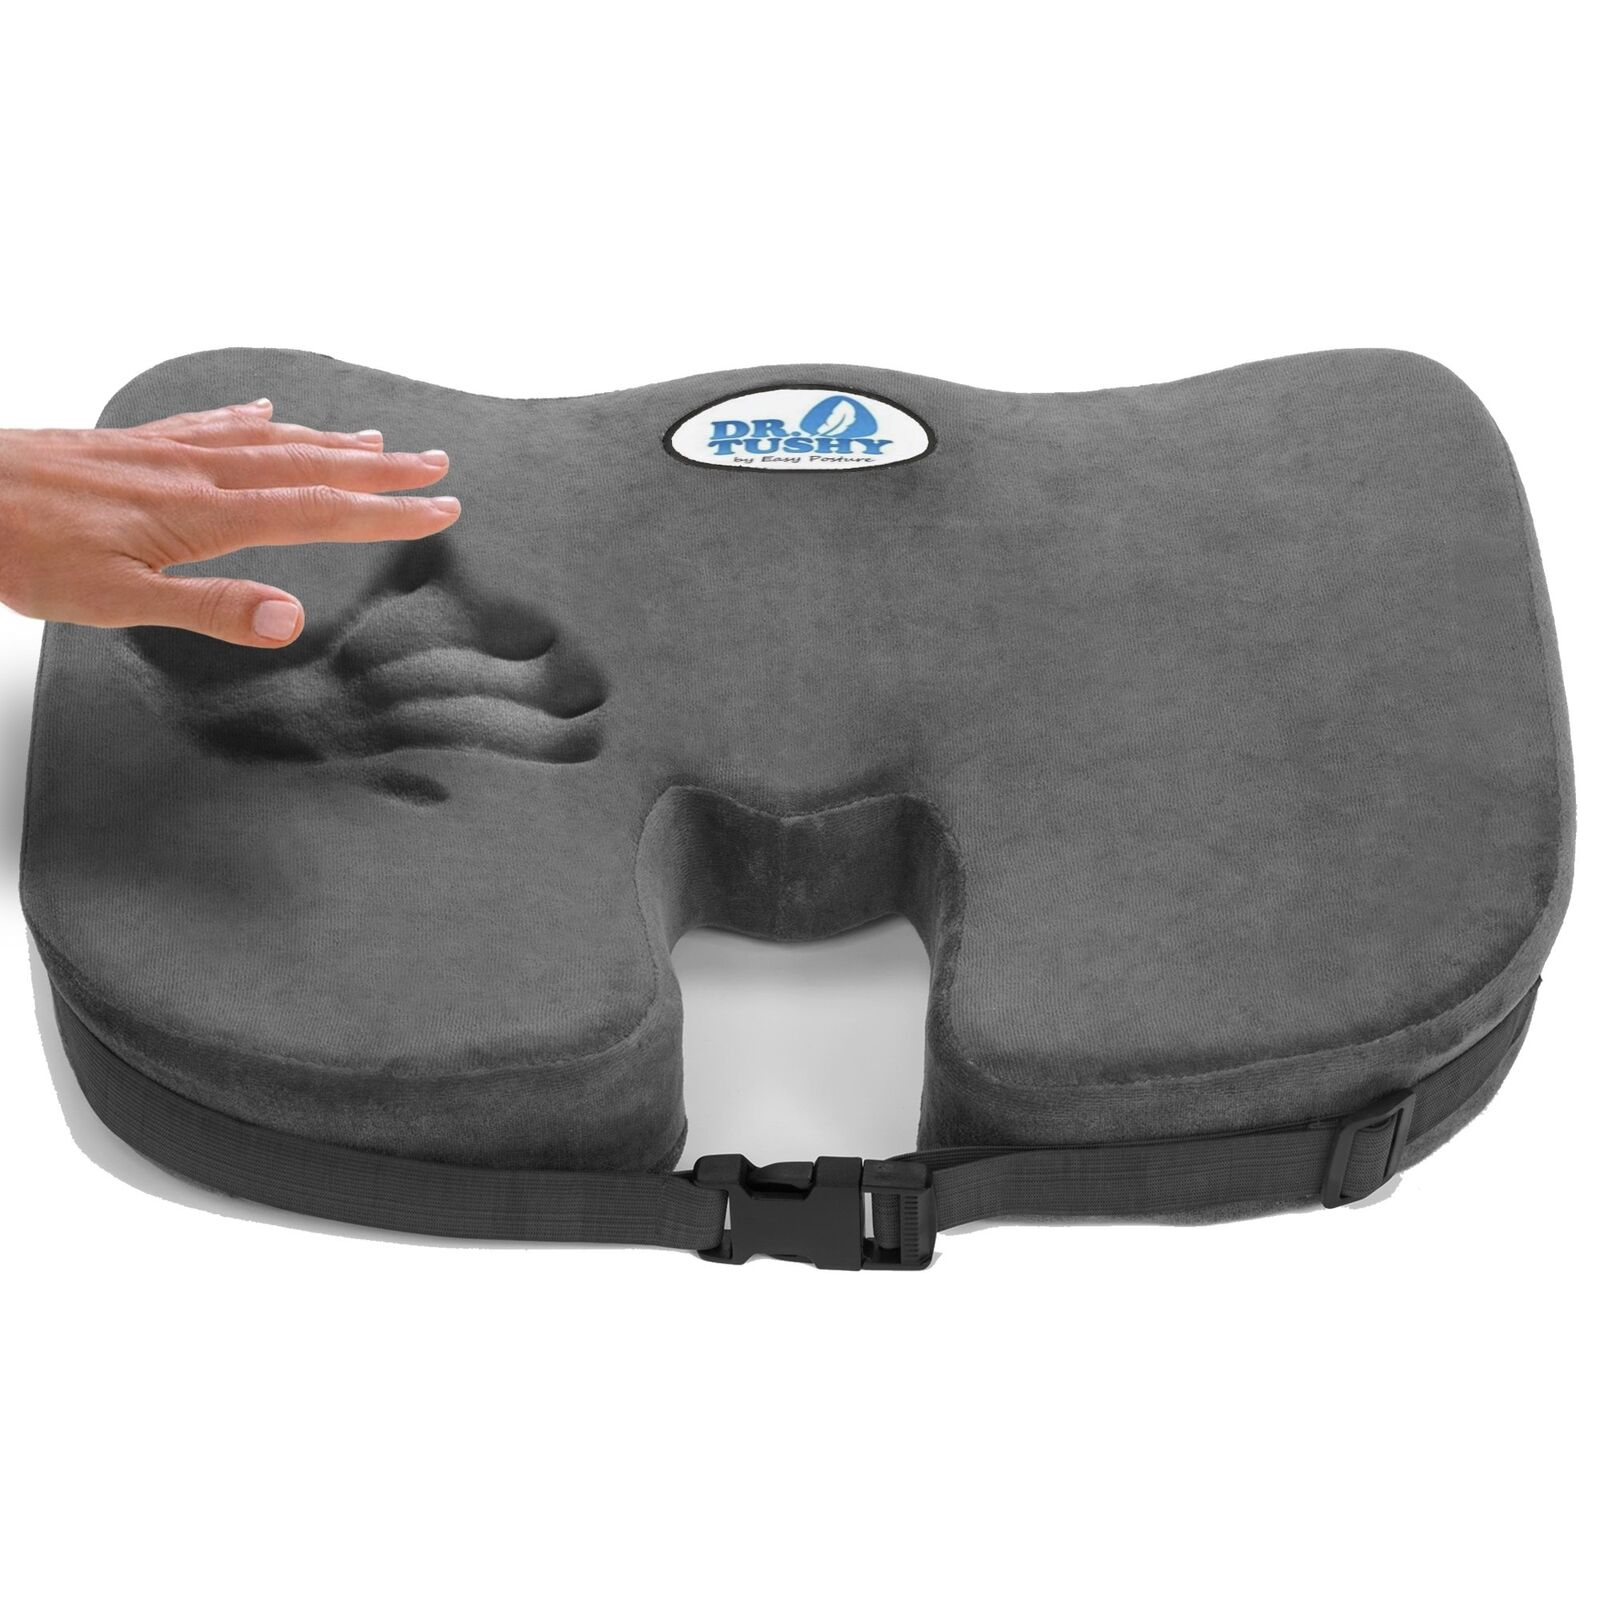 Wheel Chair Cushion Memory Foam Seat Cushion Pillow Relieve Pressure Pain For Wheel Chair Car Office